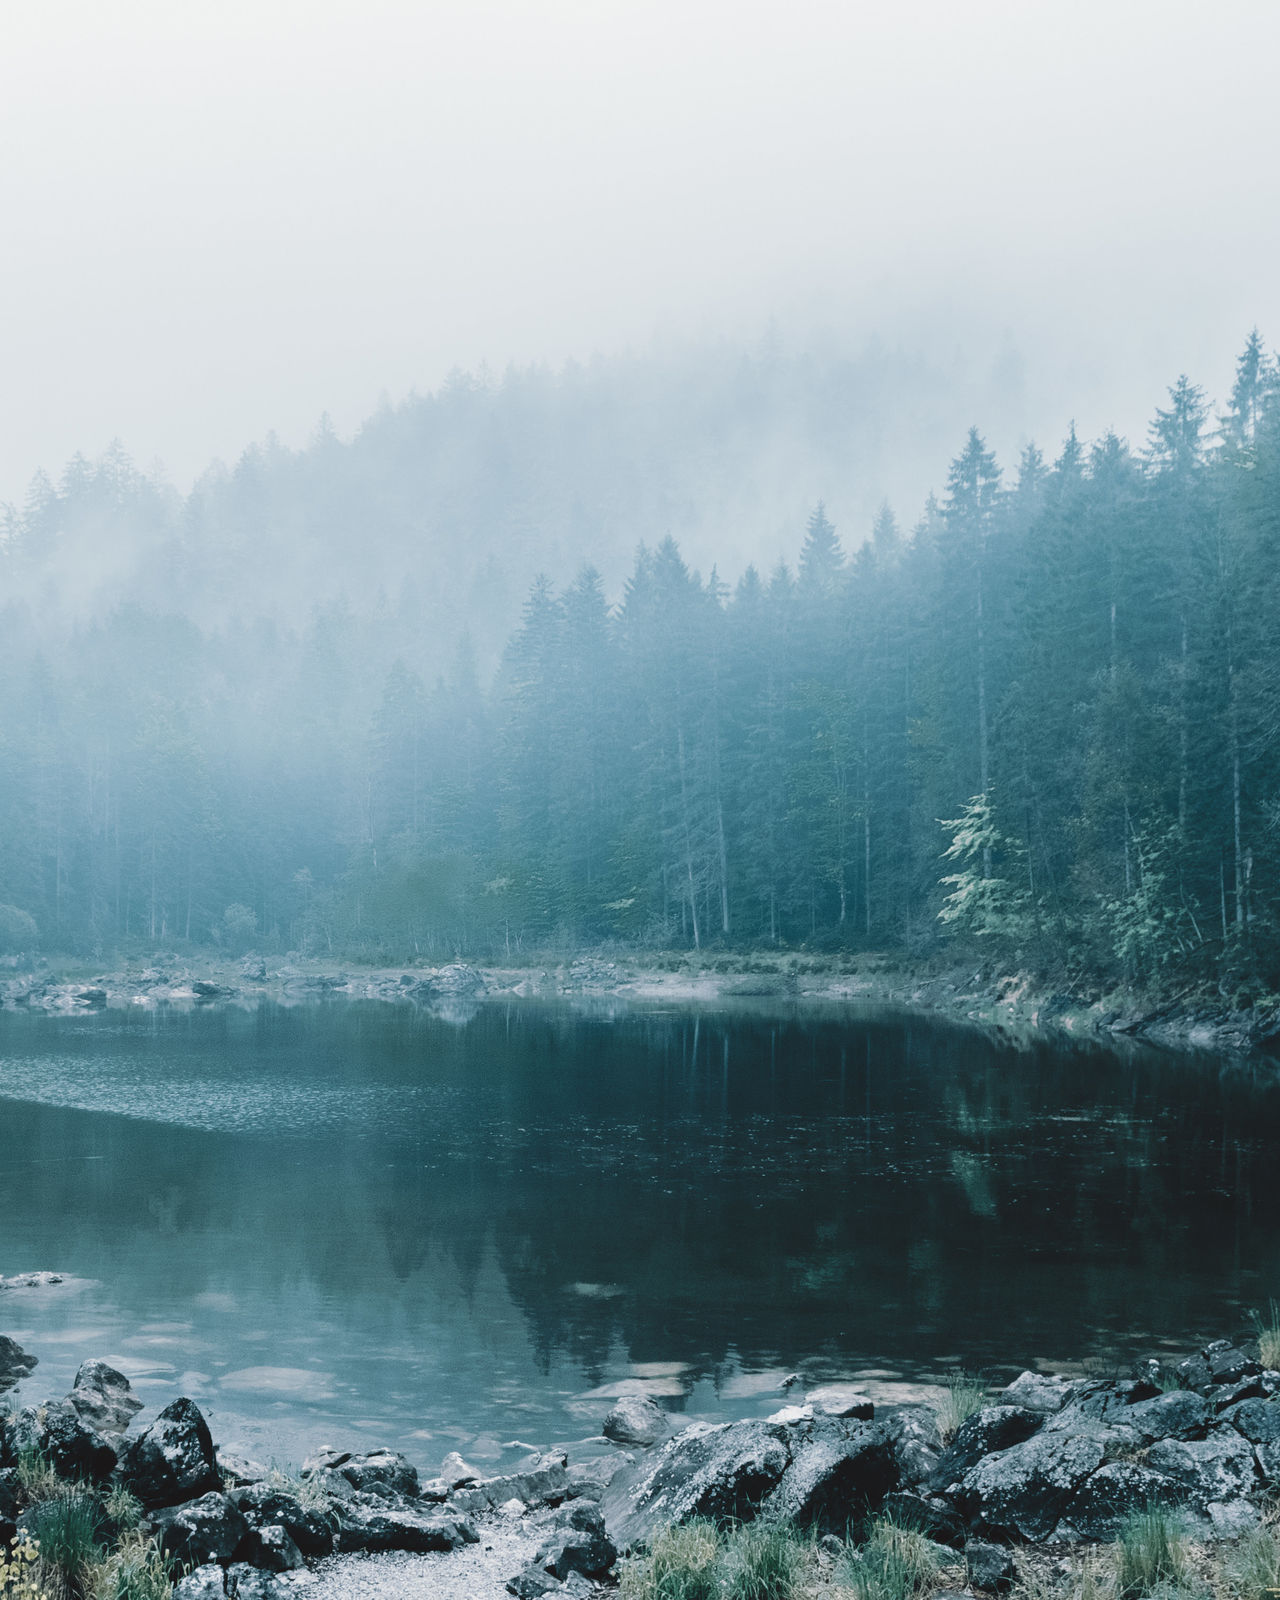 Moody lake morning Beauty In Nature Day Fog Forest Lake Landscape Mountain Natural Parkland Nature No People Outdoors Pine Woodland Reflection Scenics Sky Social Issues Tourism Travel Tree Water